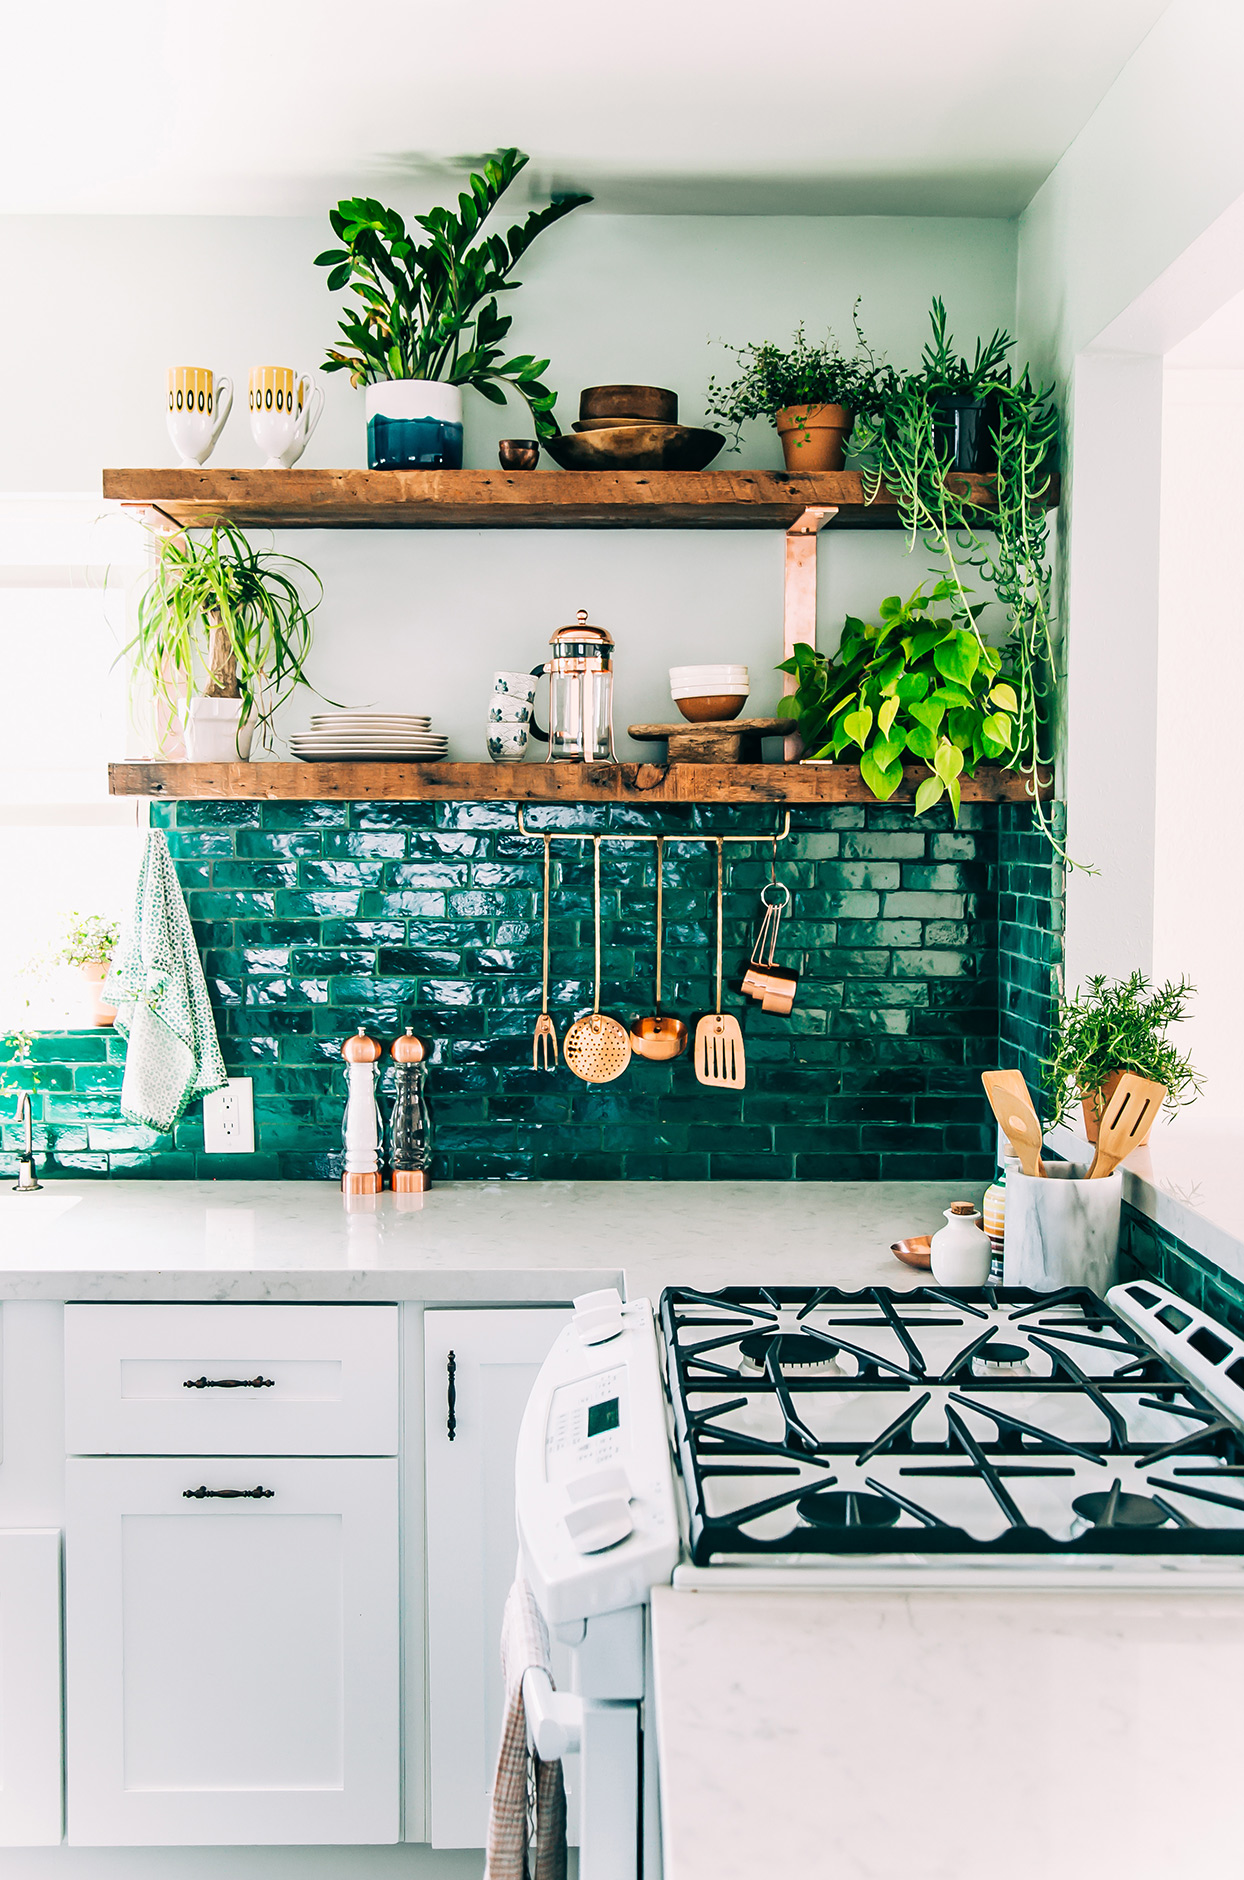 11 Unique Tile Backsplashes That Make the Case for Decorating with Color and Pattern